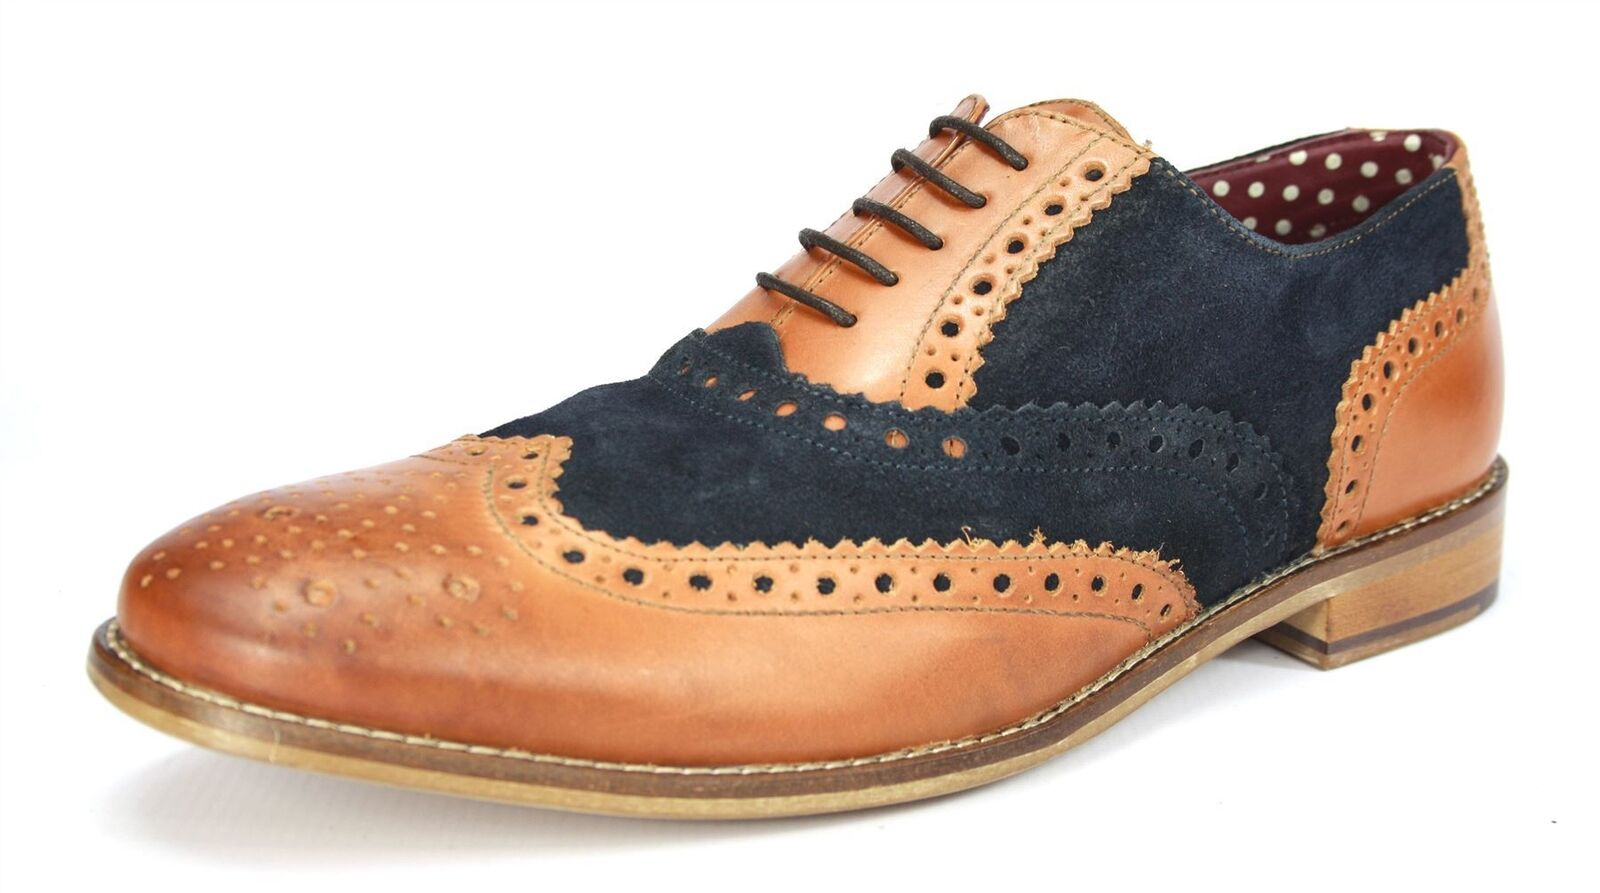 London Brogues Gatsby Tan / Navy Lace Up Brogues Mens Leather Round Toe Shoes